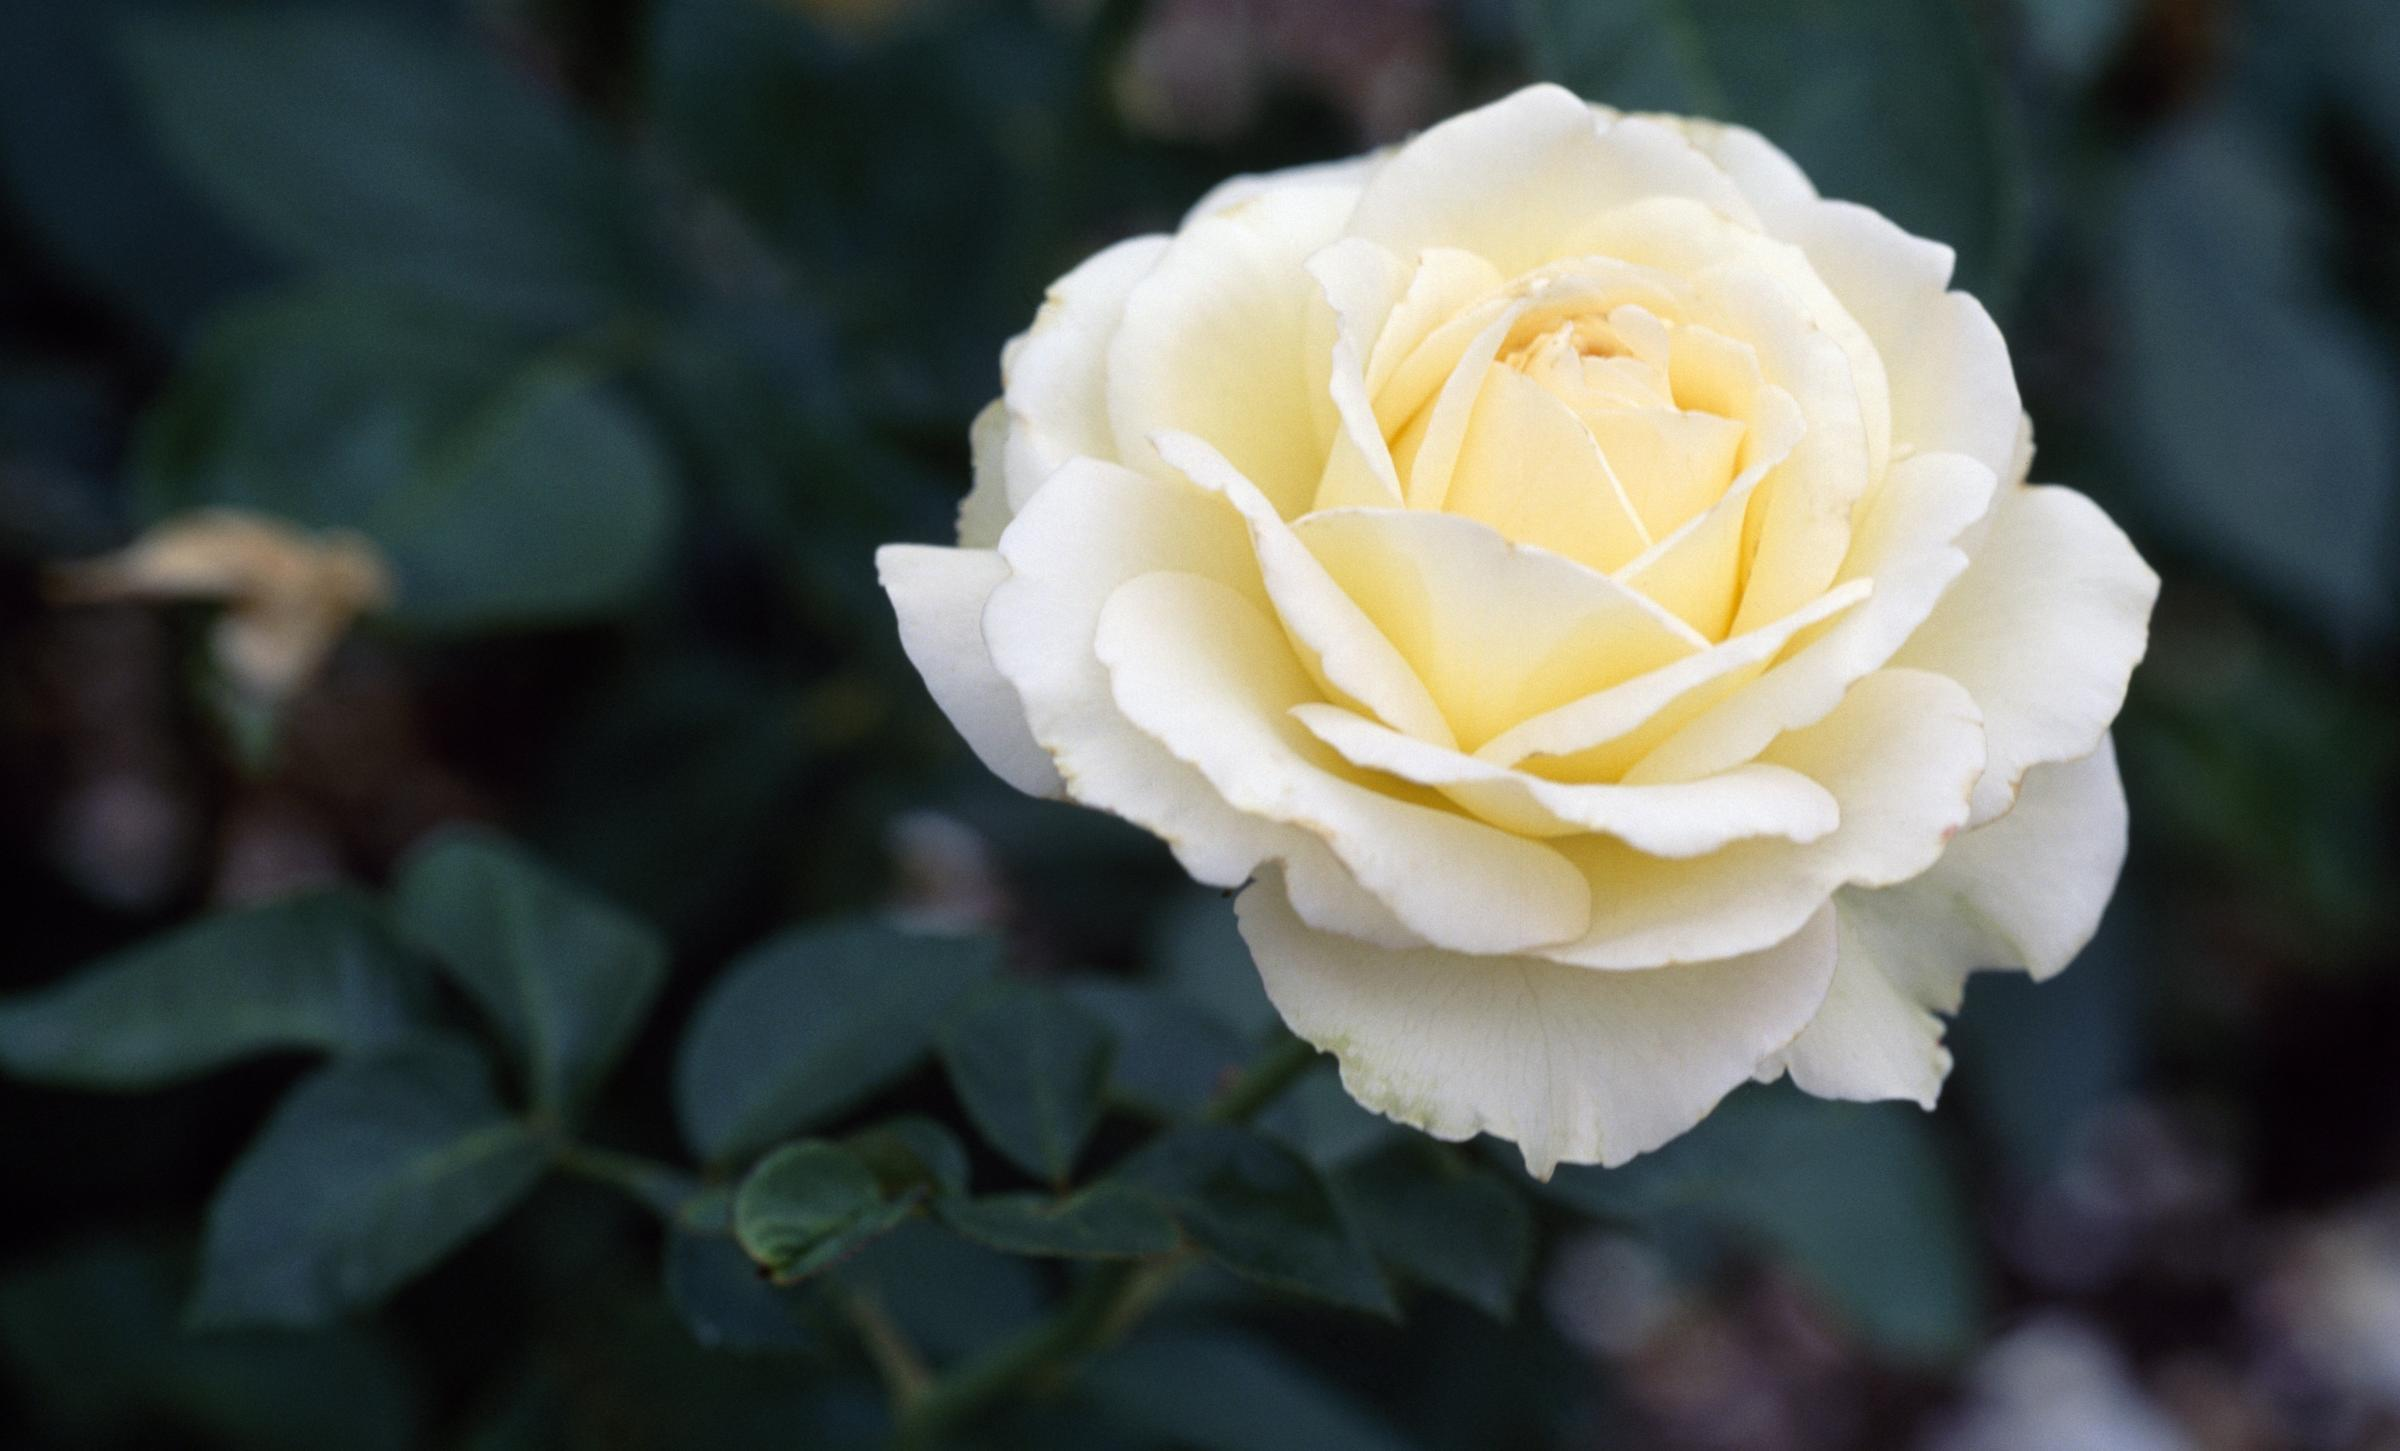 March 30 will be officially known as White Rose Day